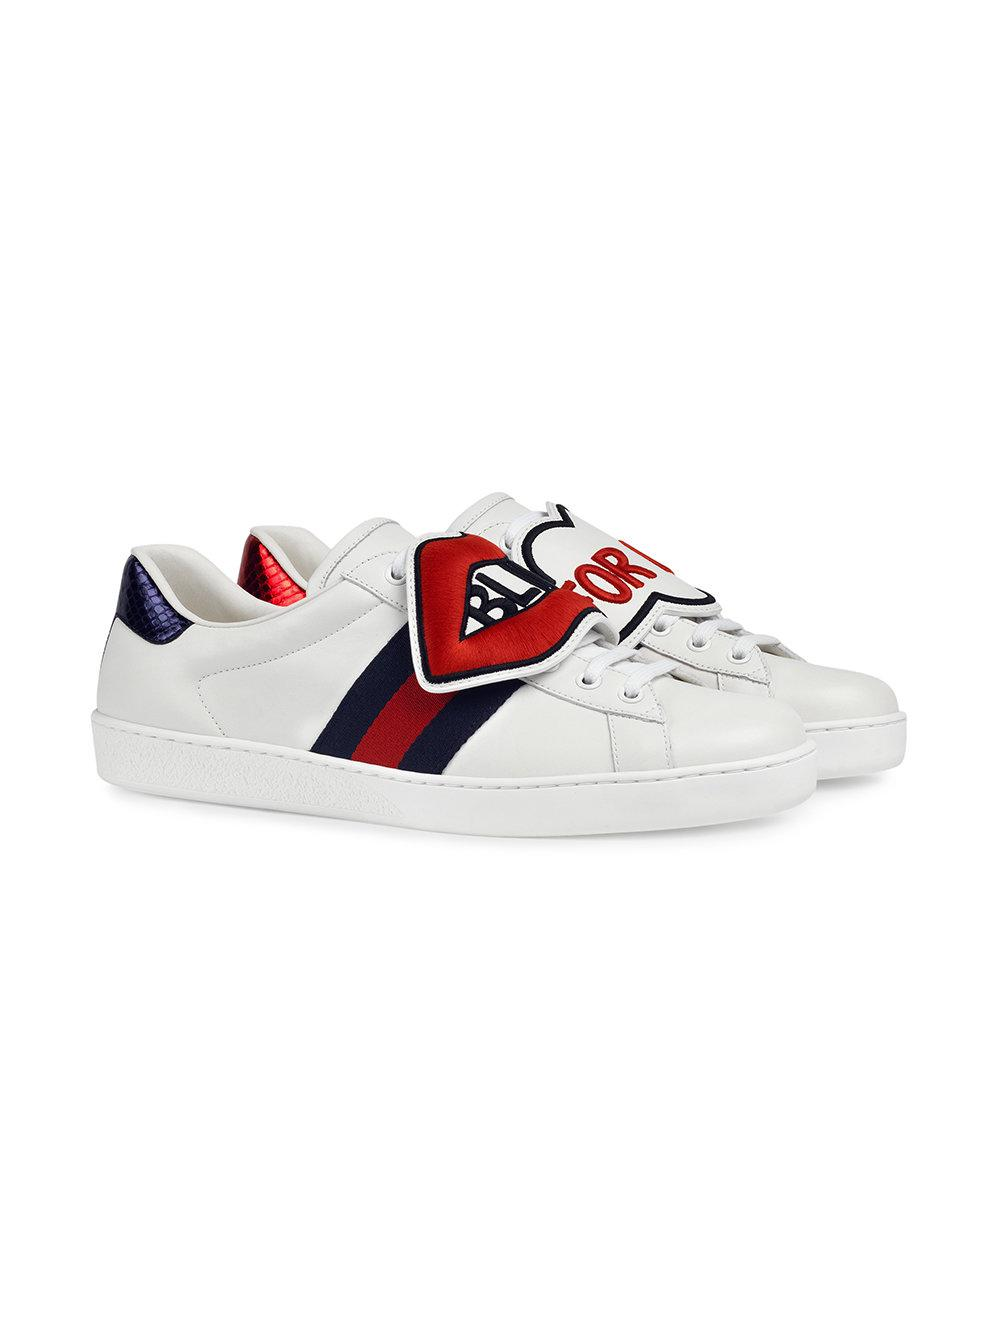 61b7a82d7c6 Lyst - Gucci Ace Sneaker With Removable Embroideries in White for Men